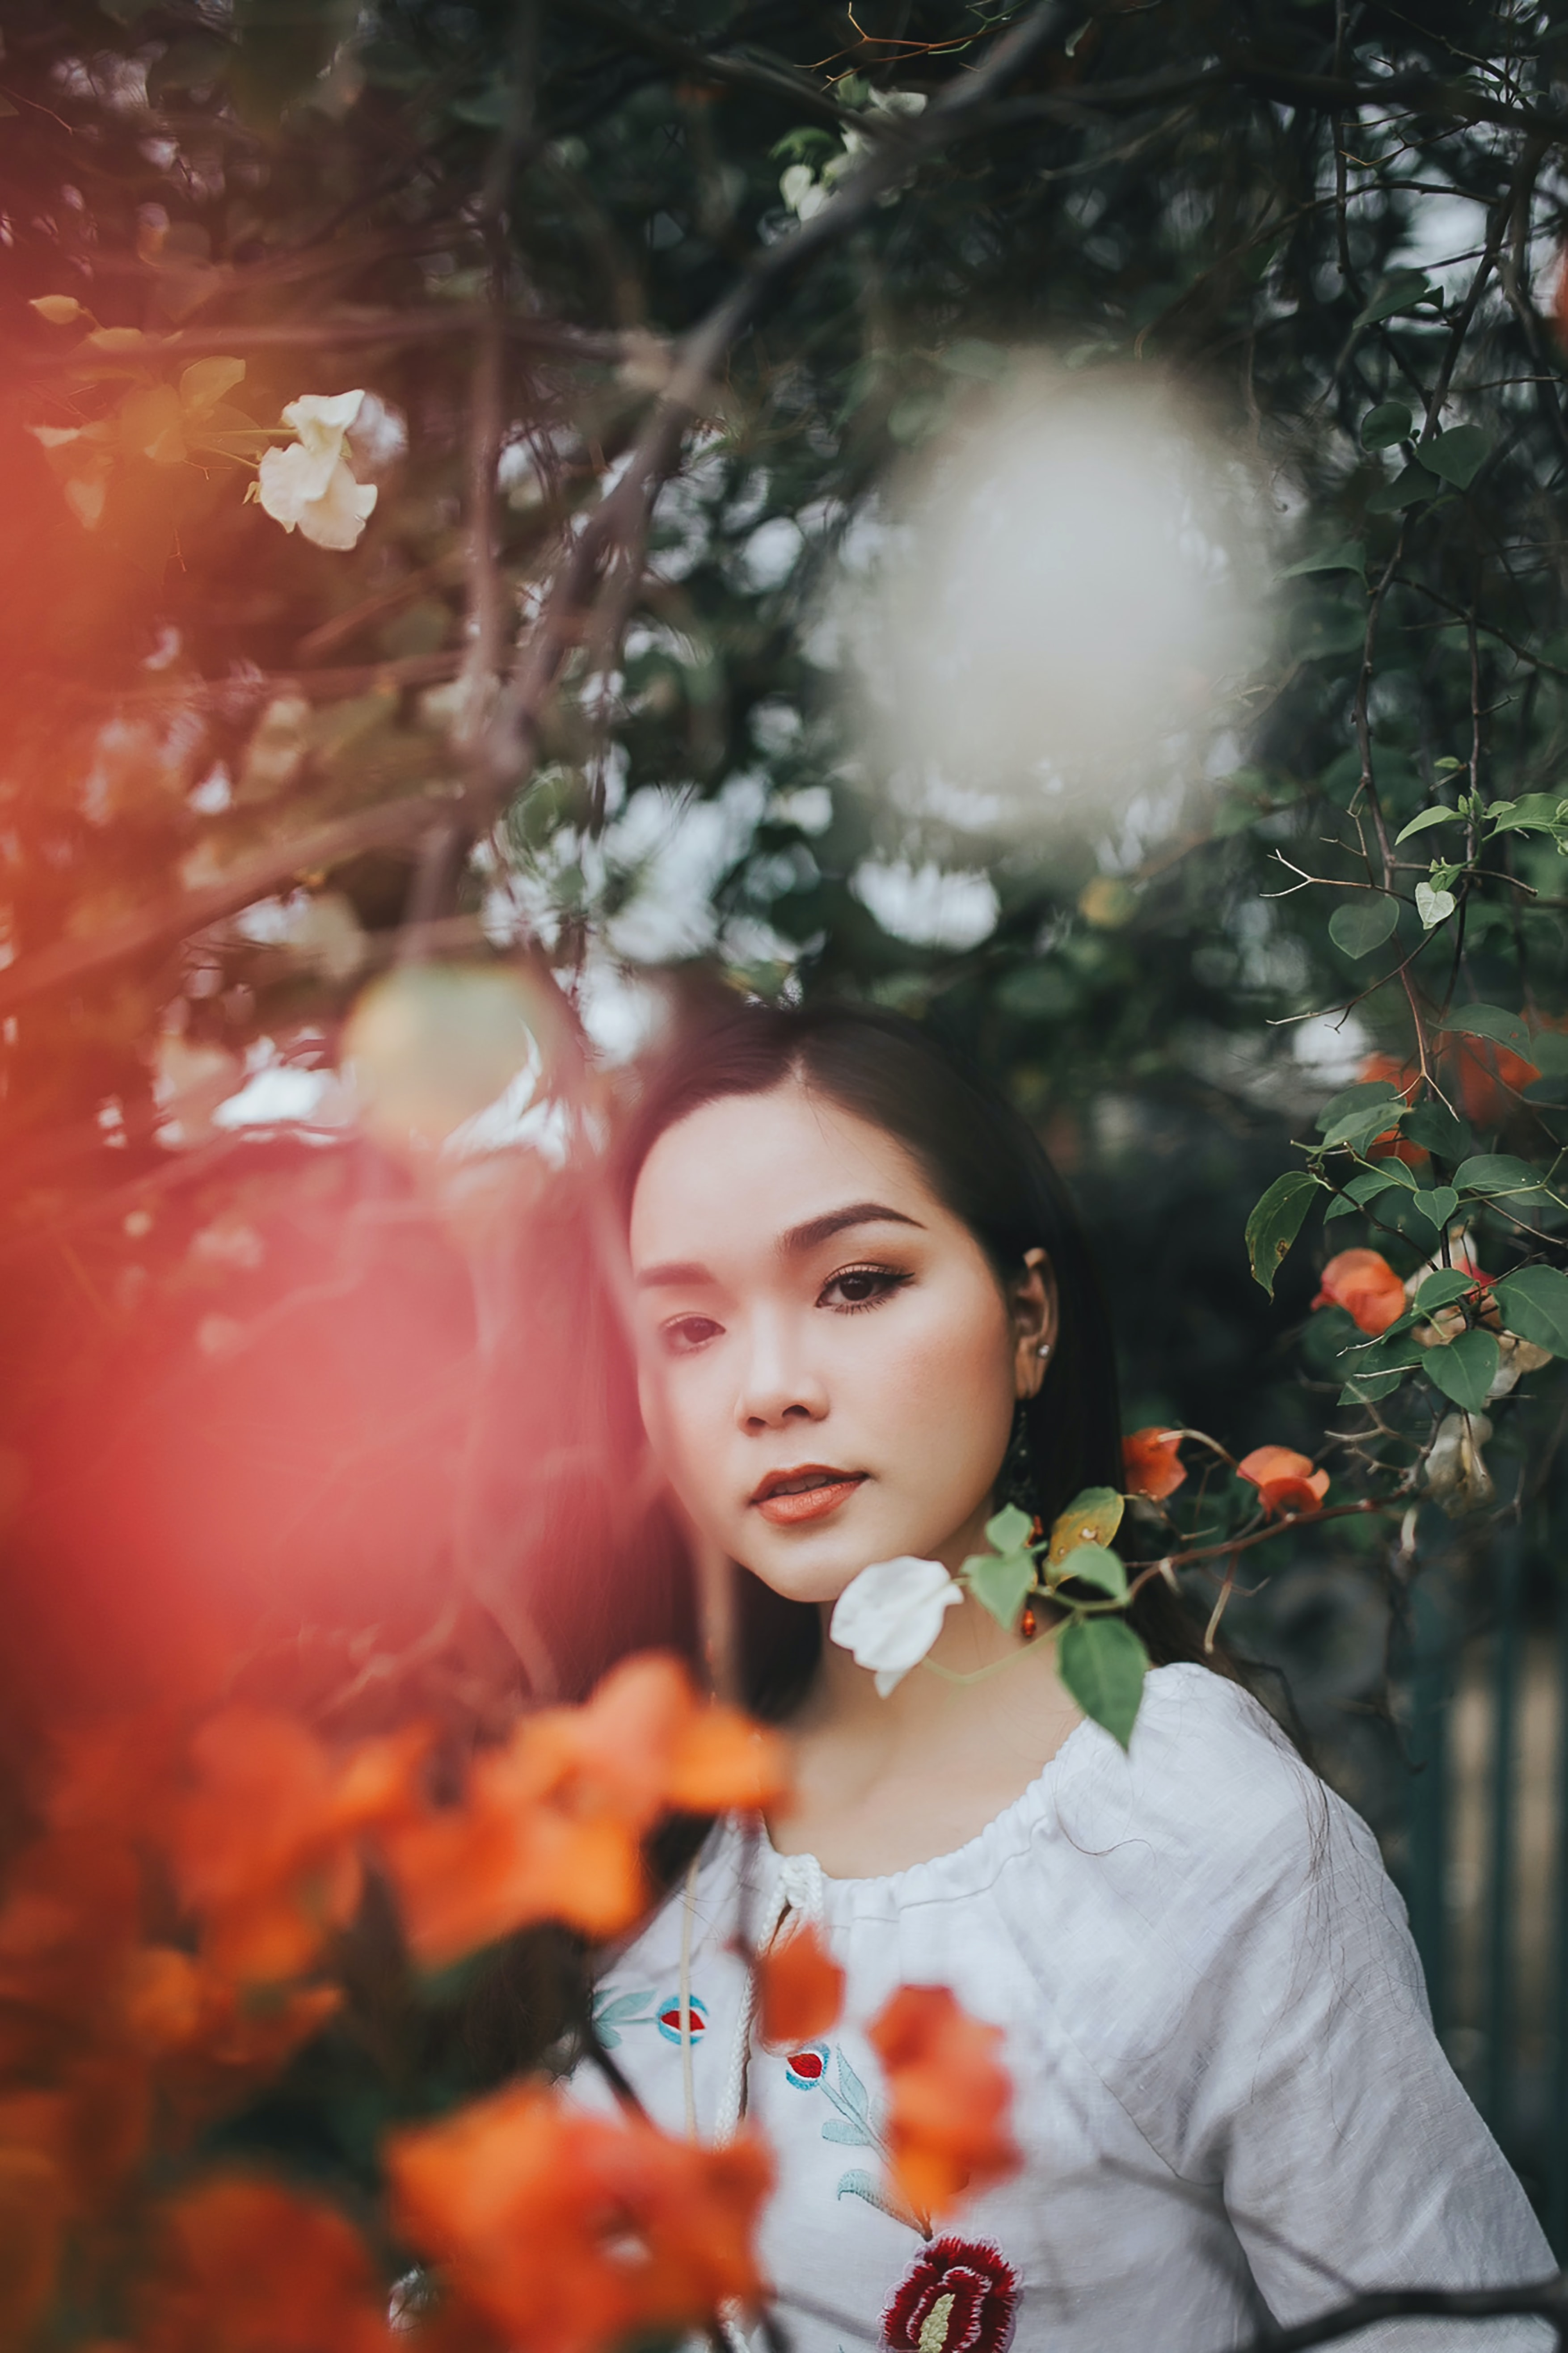 selective focus photo of woman wearing white top beside trees